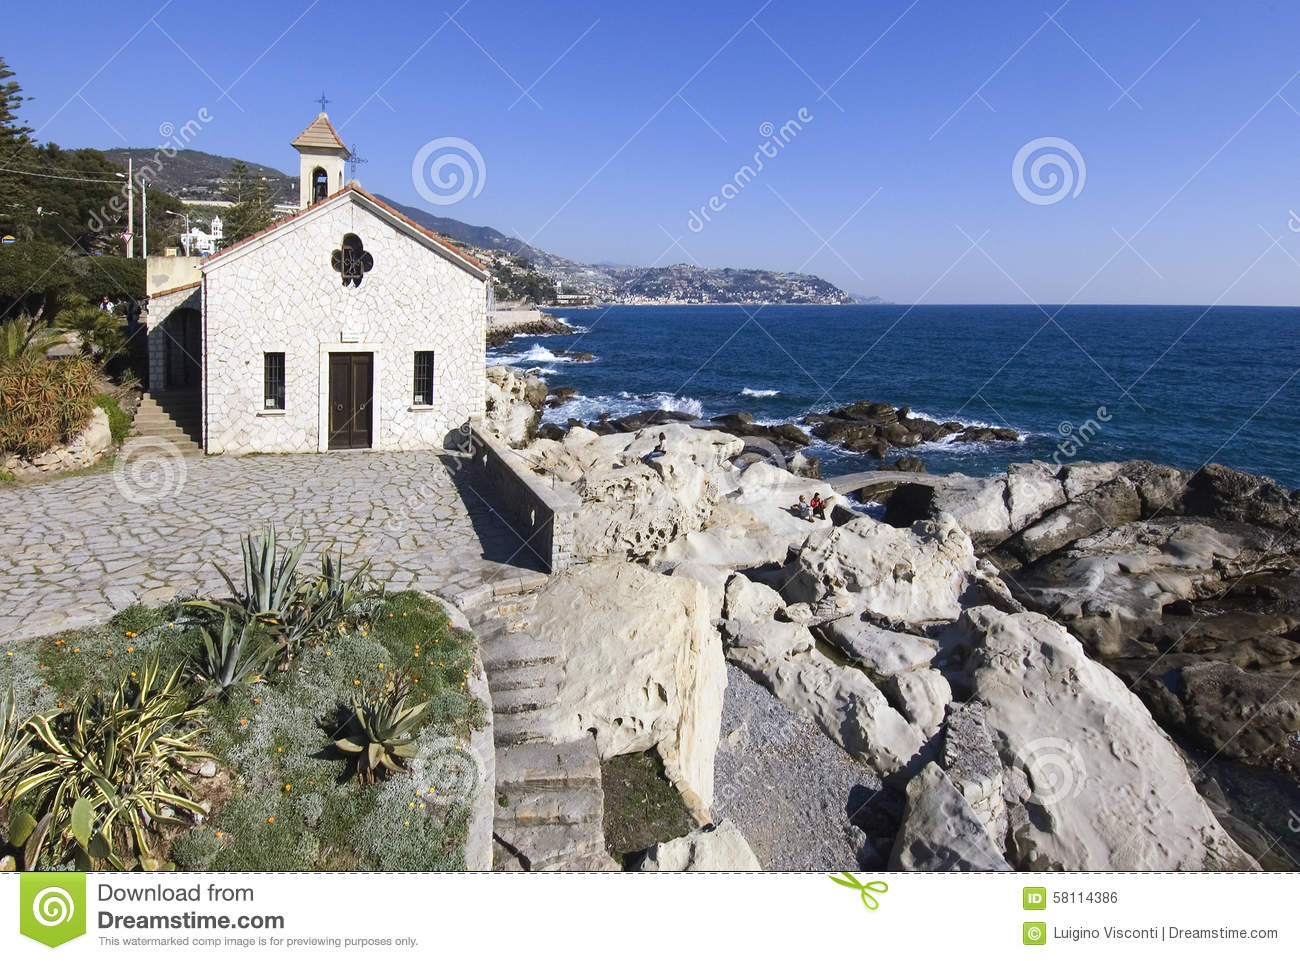 Bordighera, Italy Stock Photo - Image: 58114386